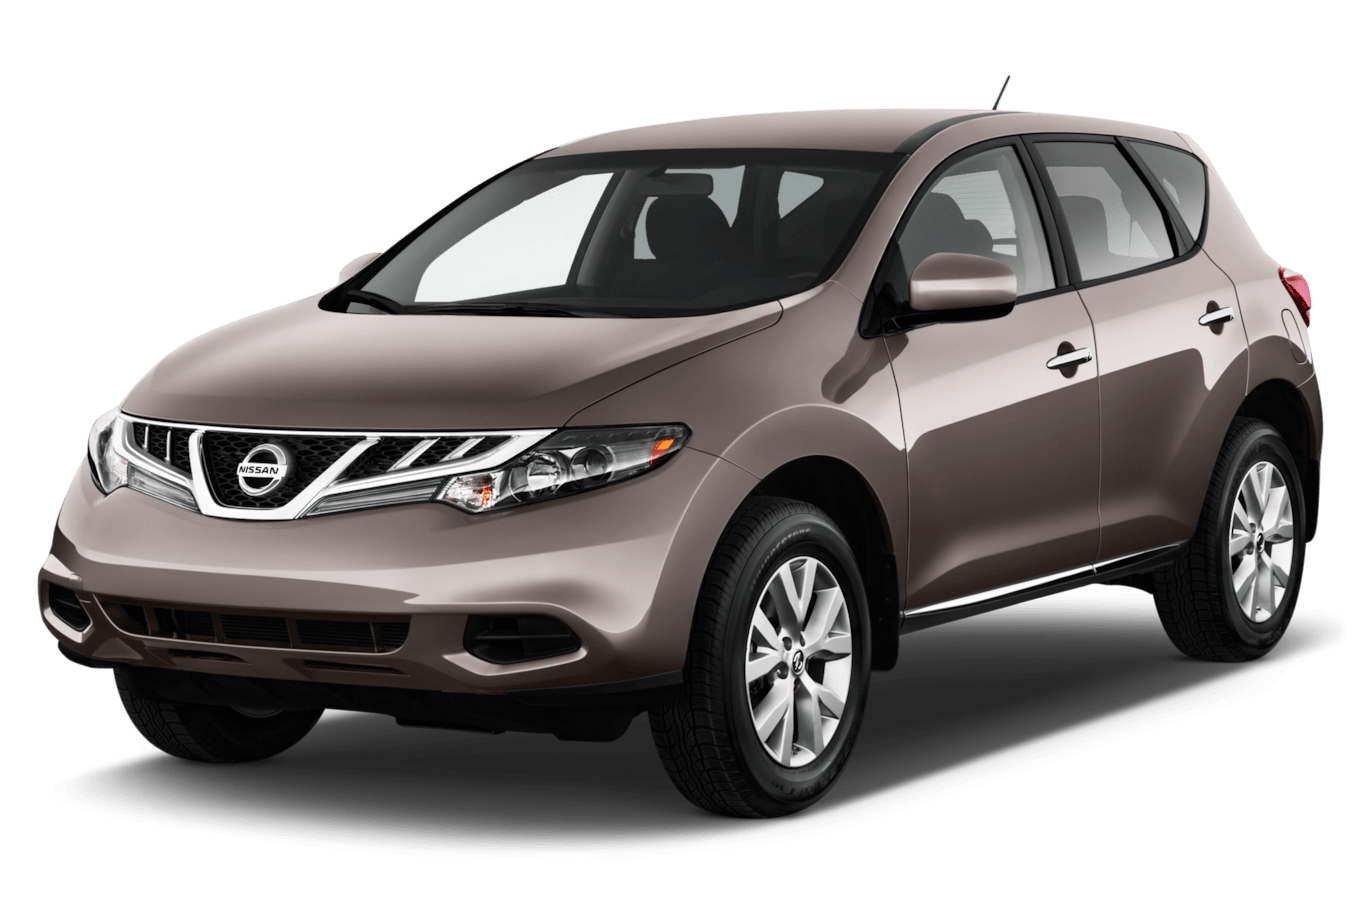 2013 nissan murano s fwd suv angular front?resize\\\\\=665%2C442 2012 sentra wiring diagram 2012 f 150 wiring diagram, 2012 prius 2013 sentra wiring diagram at crackthecode.co